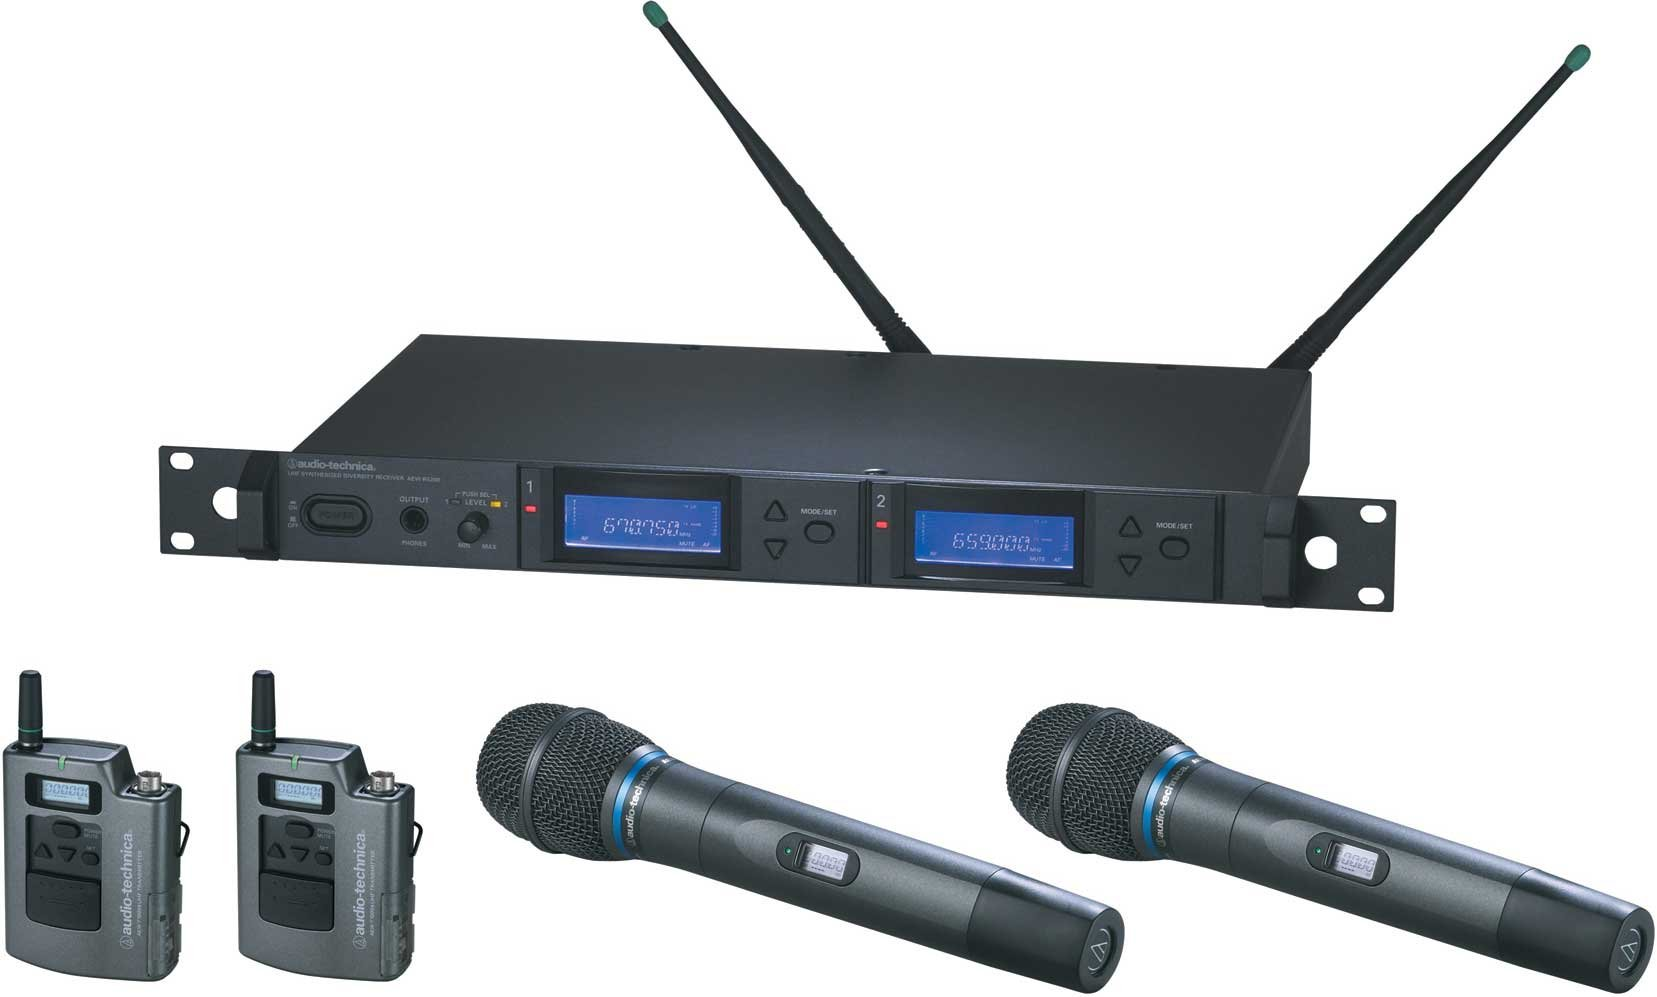 Wireless Microphone System with 2 x Bodypack Transmitters & 2 x AEW-T5400a Cardioid Condenser Mic/Transmitter, UHF Band C: 541.500 MHz to 566.375 MHz